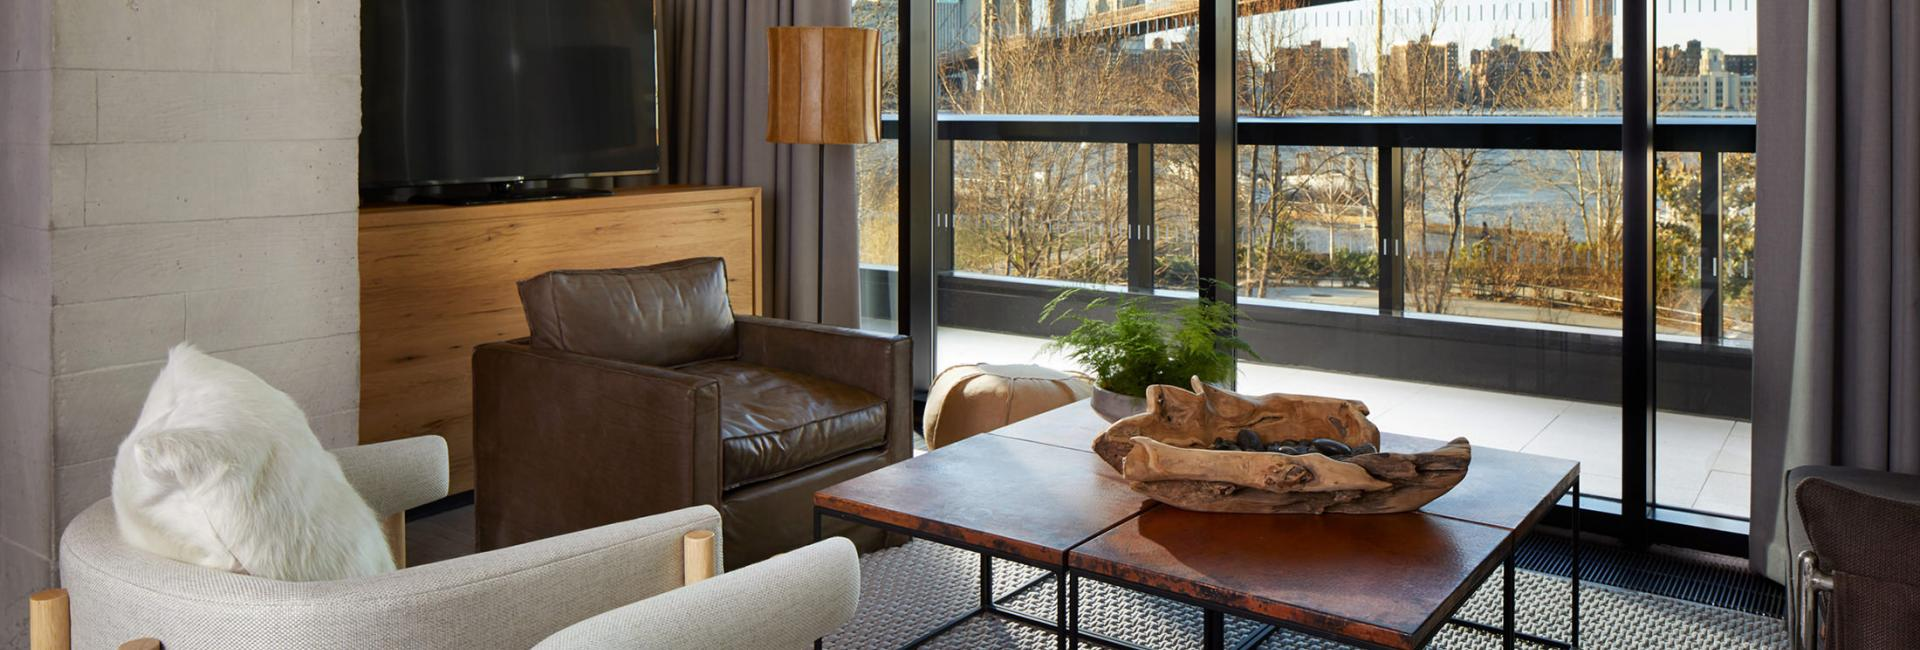 The lounge area of a 1 Hotels suite with a view of Brooklyn Bridge.